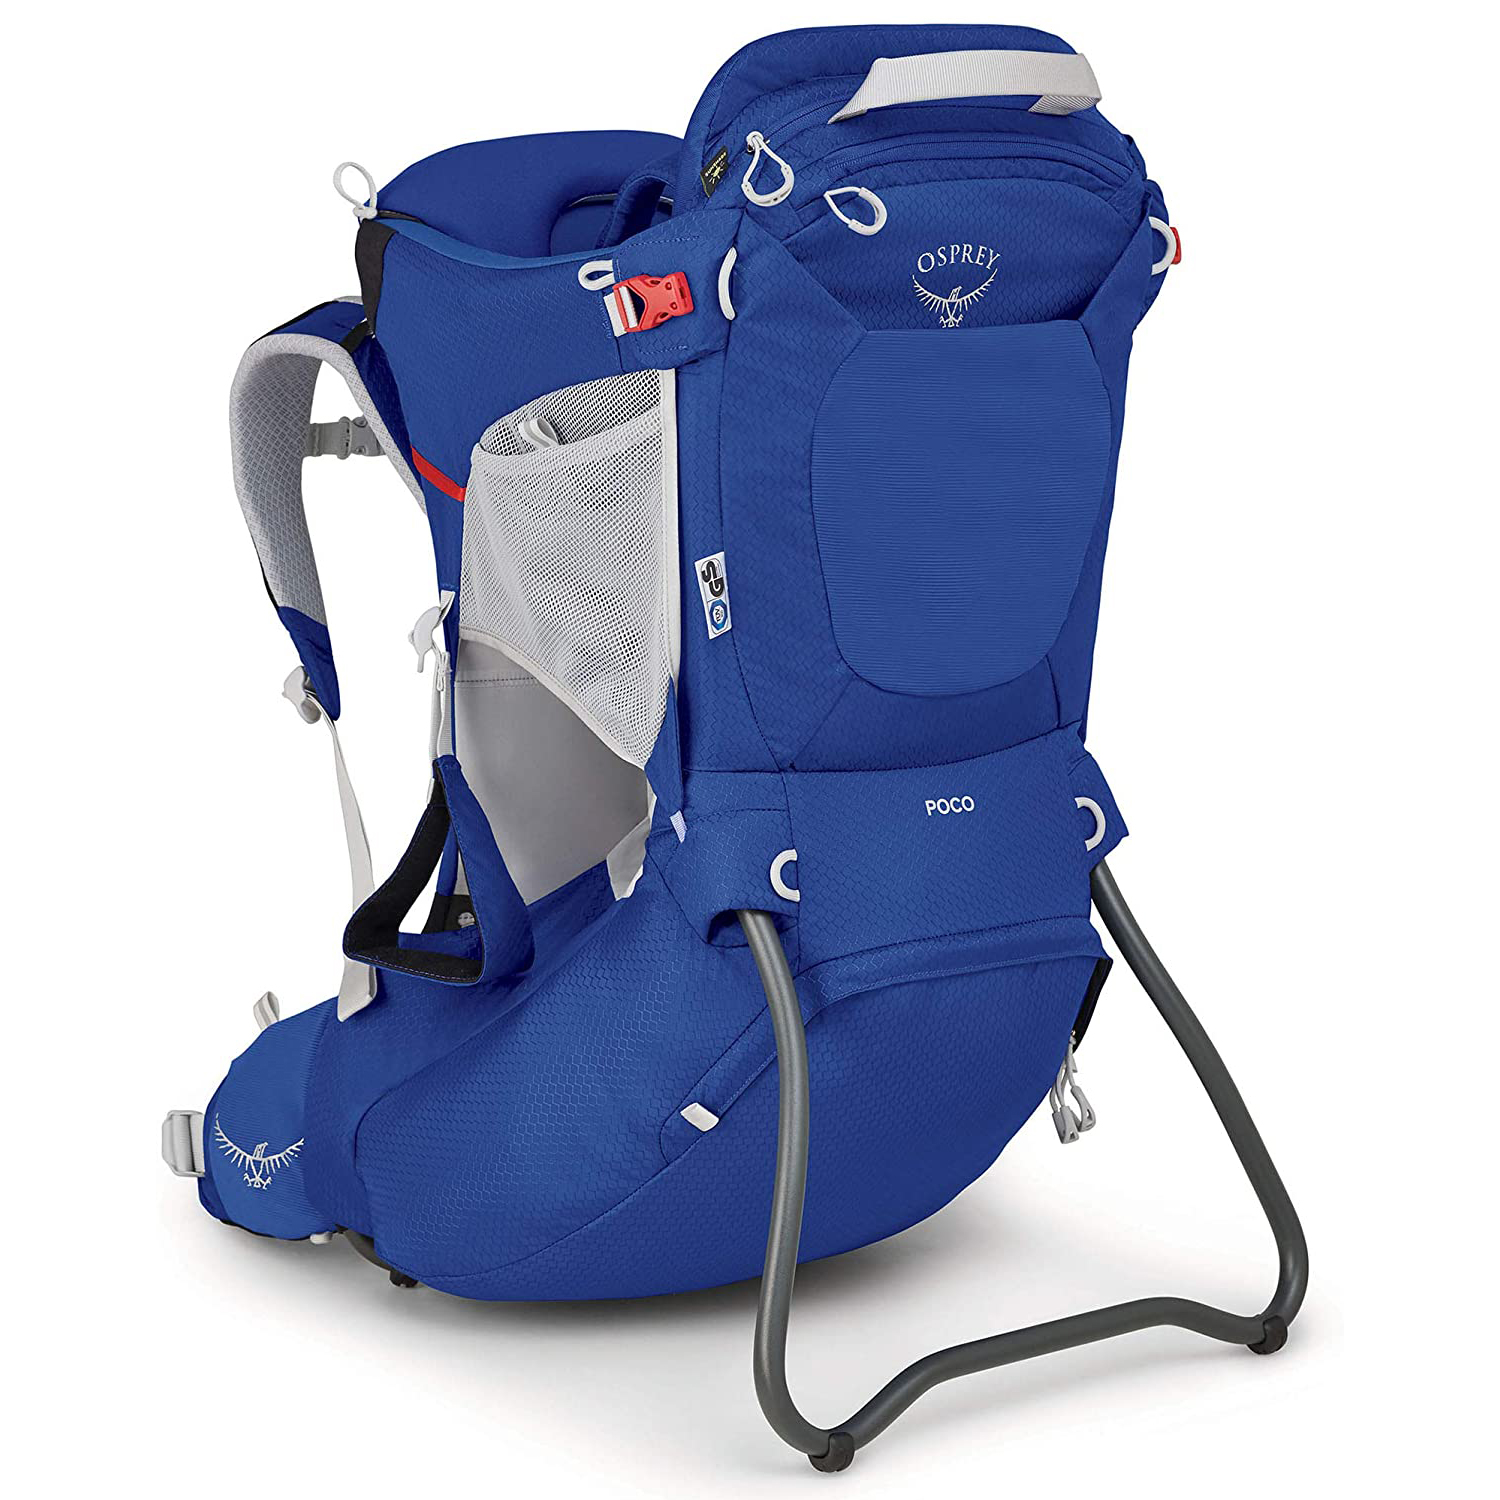 Best Overall Hiking Baby Carrier (Runner-Up): Osprey Poco Child Carrier